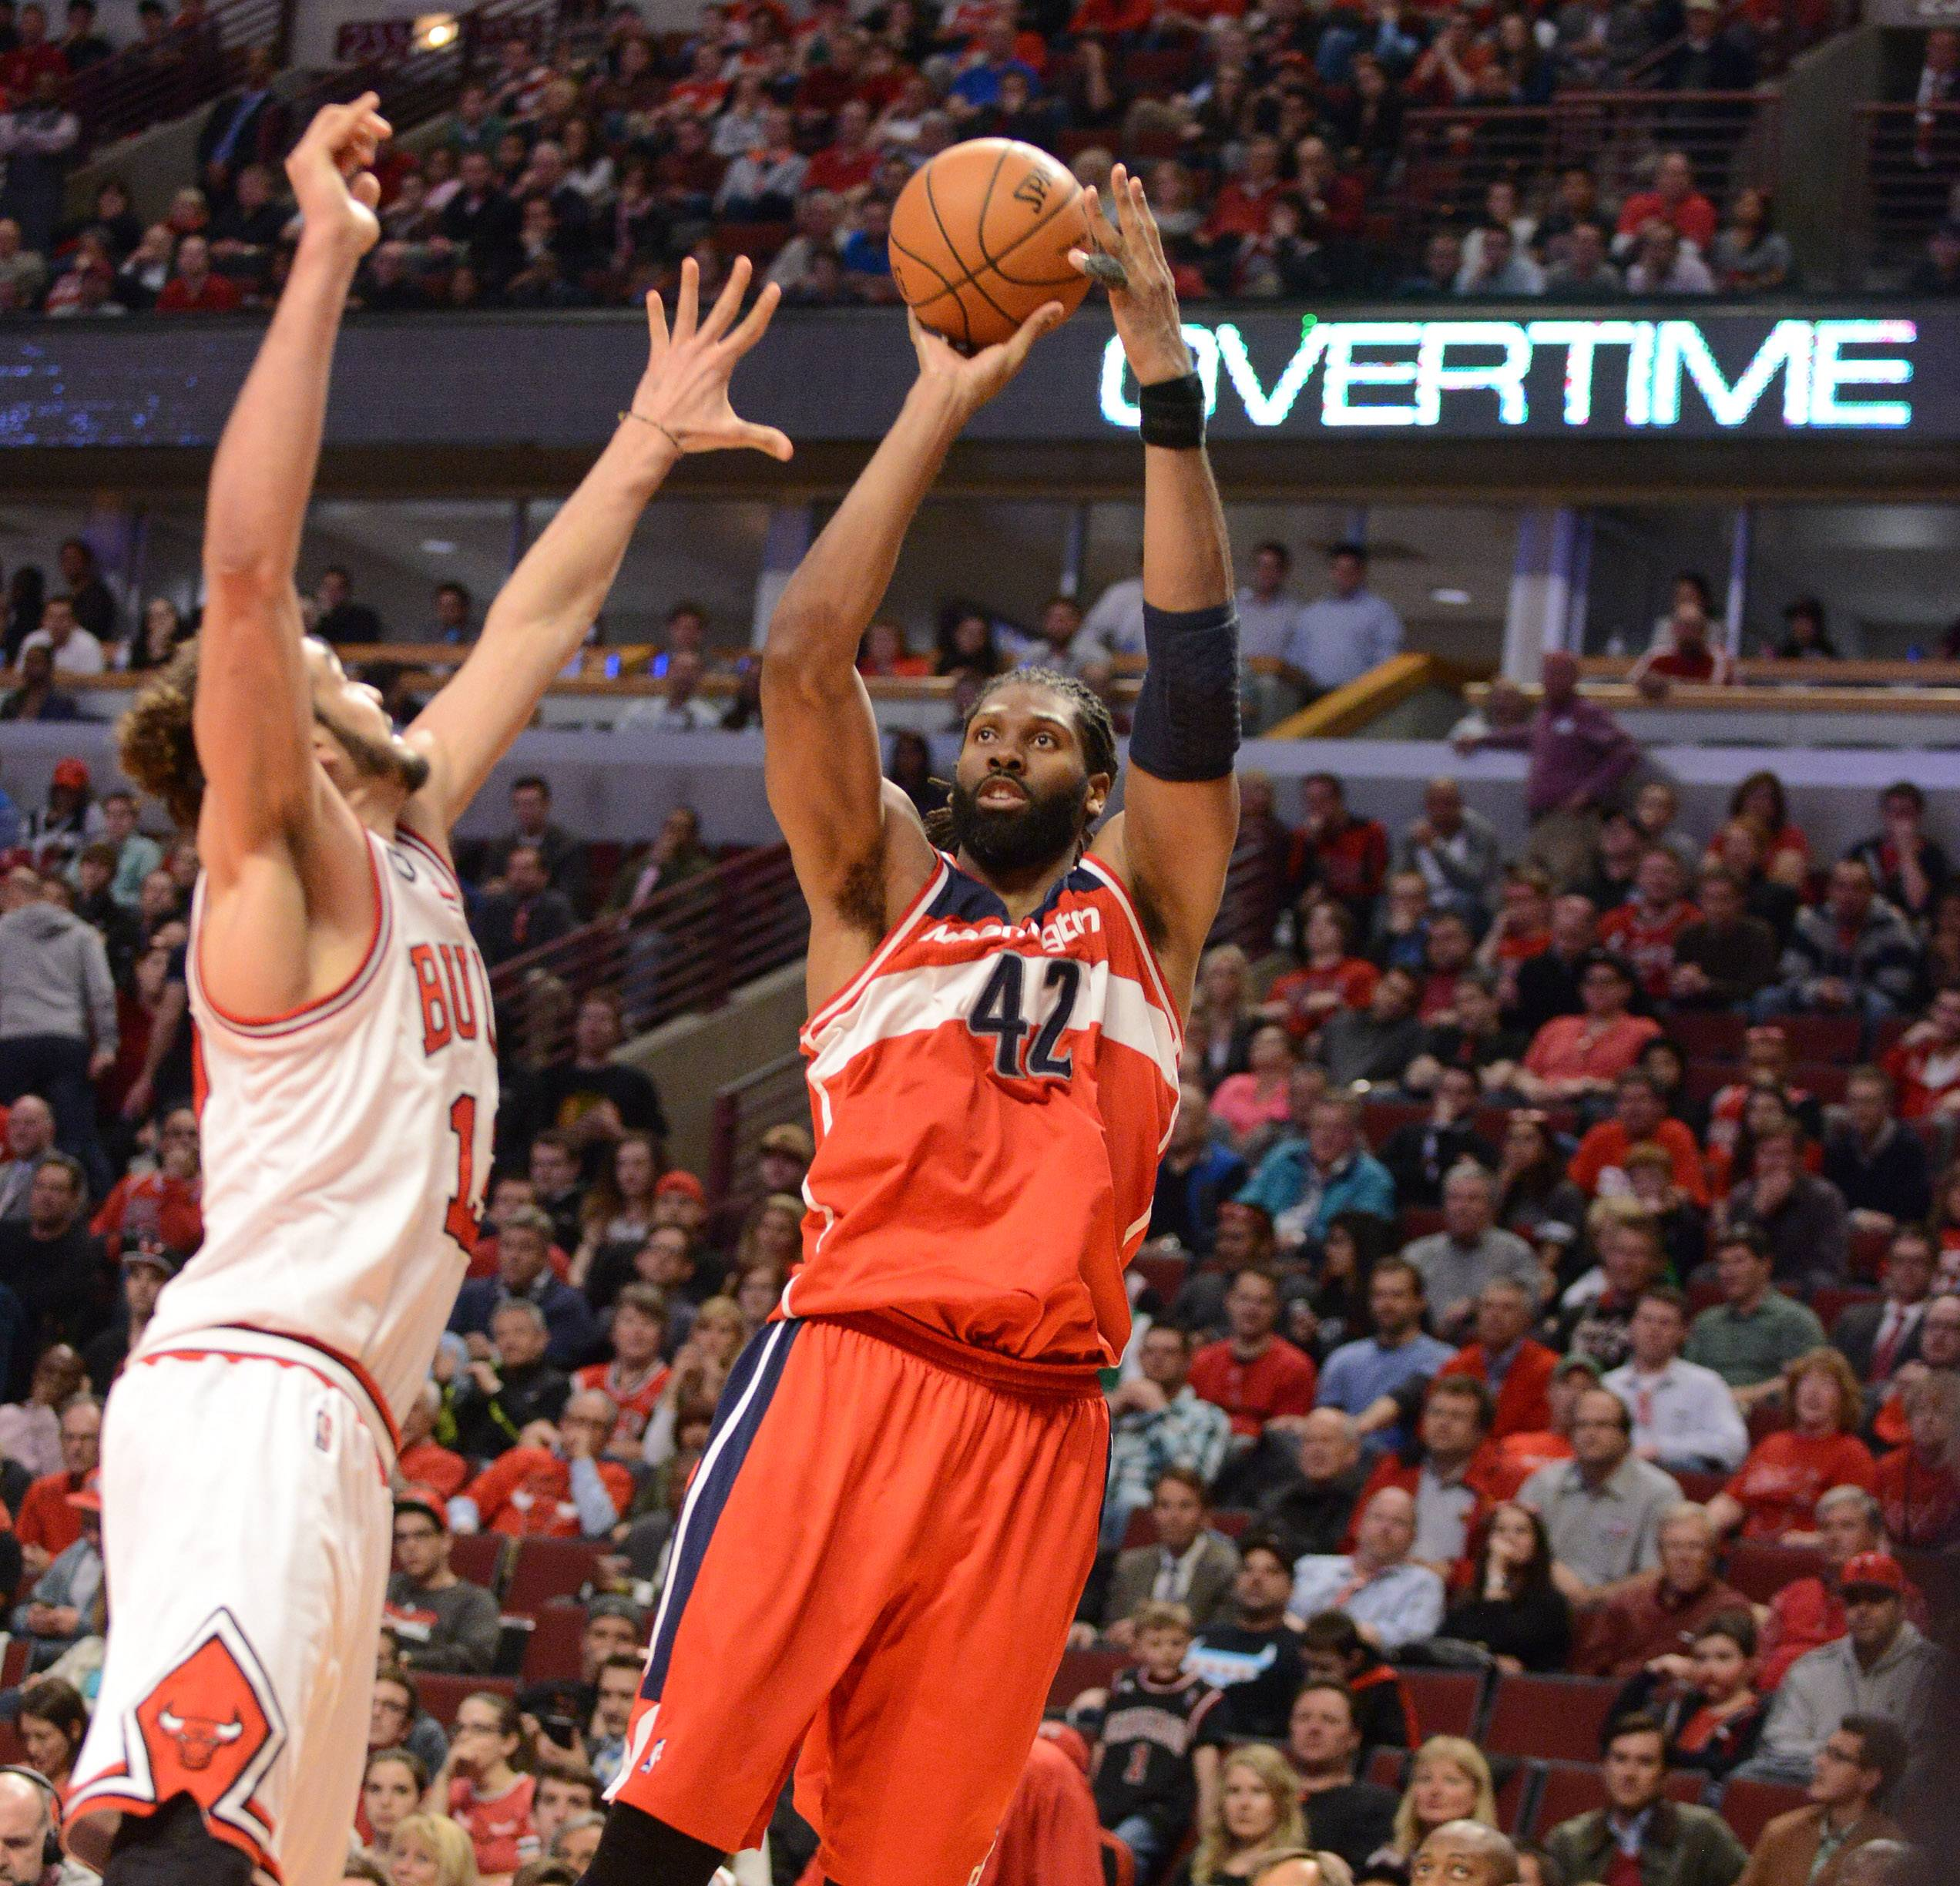 The Washington Wizards have enjoyed success with getting the ball to power forward Nene (42). The Bulls, however, struggled to score late in both playoff losses.